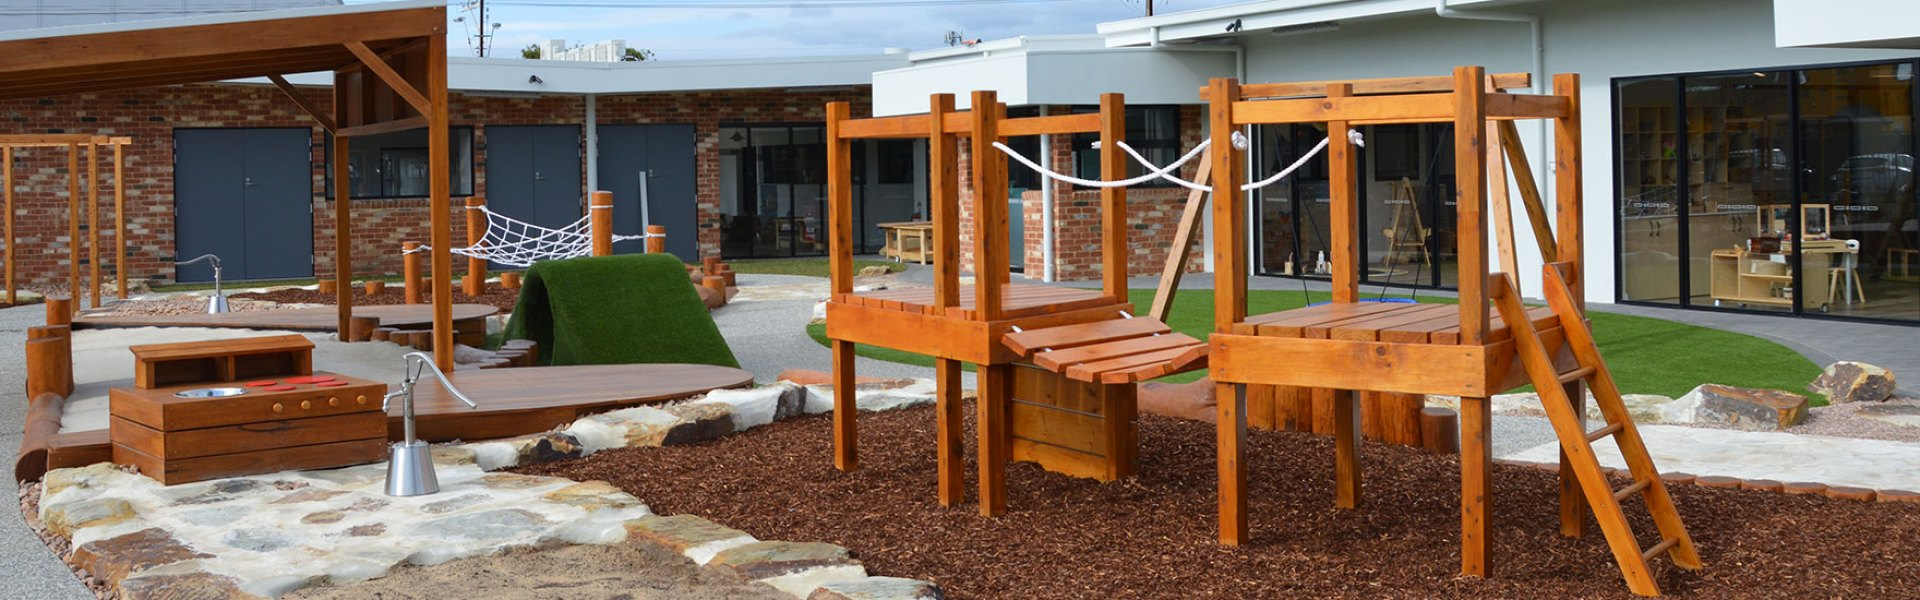 Commercial Landscaping Adelaide | Commercial Landscapers Adelaide | Visual Landscape Gardening